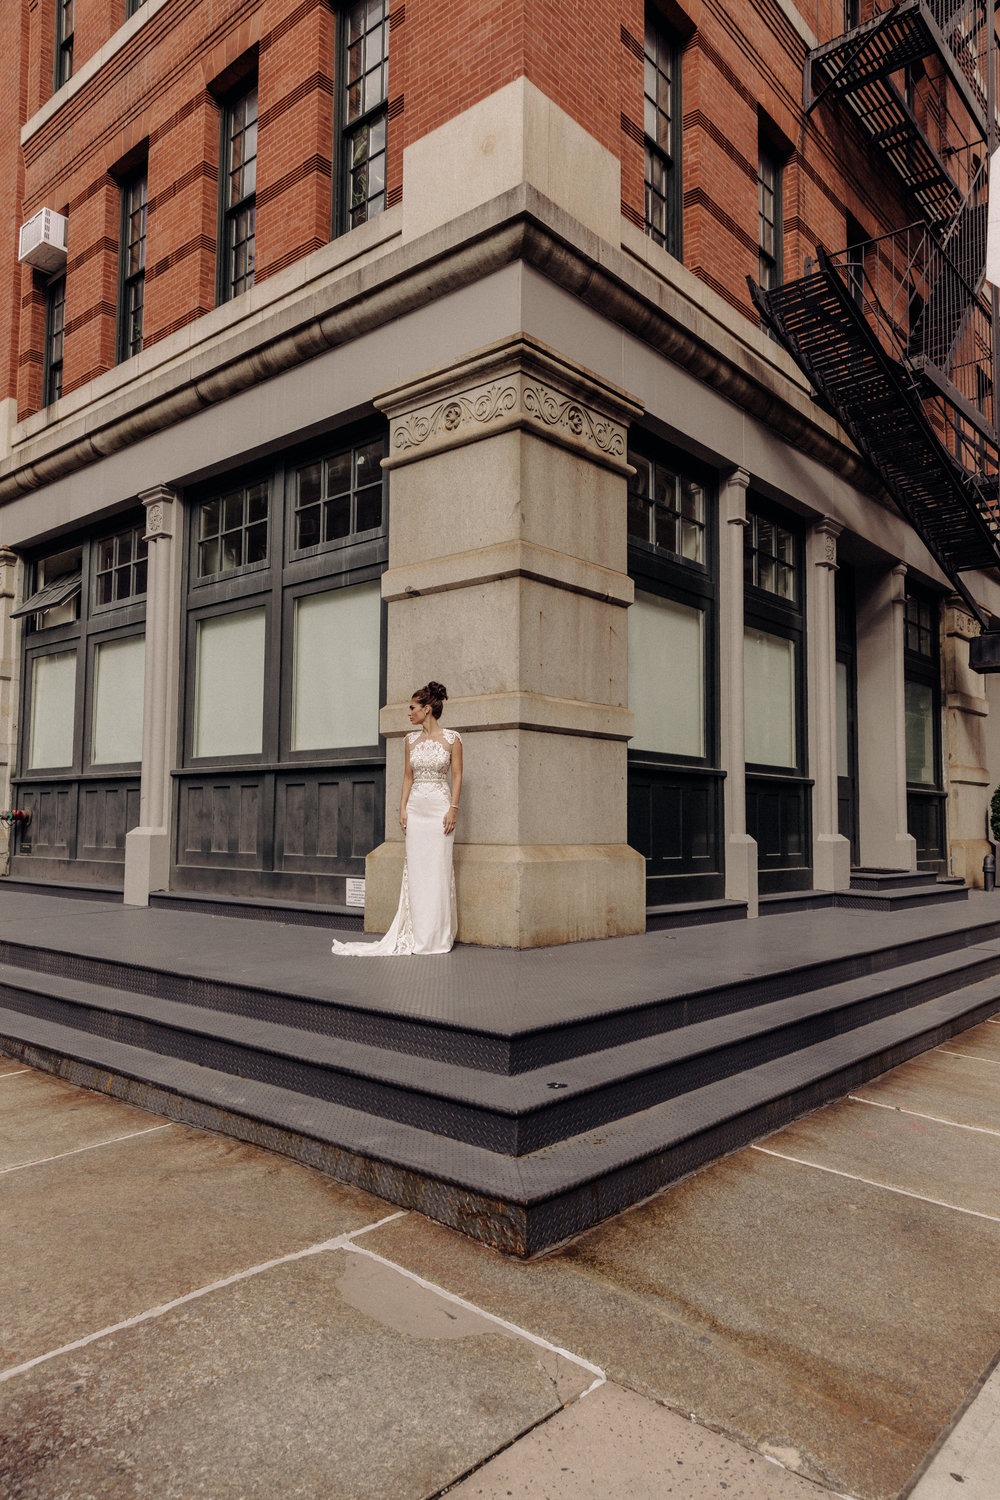 Hailley+Howard_Manhattan+Wedding_The+Tibecca+Rooftop-58.jpg